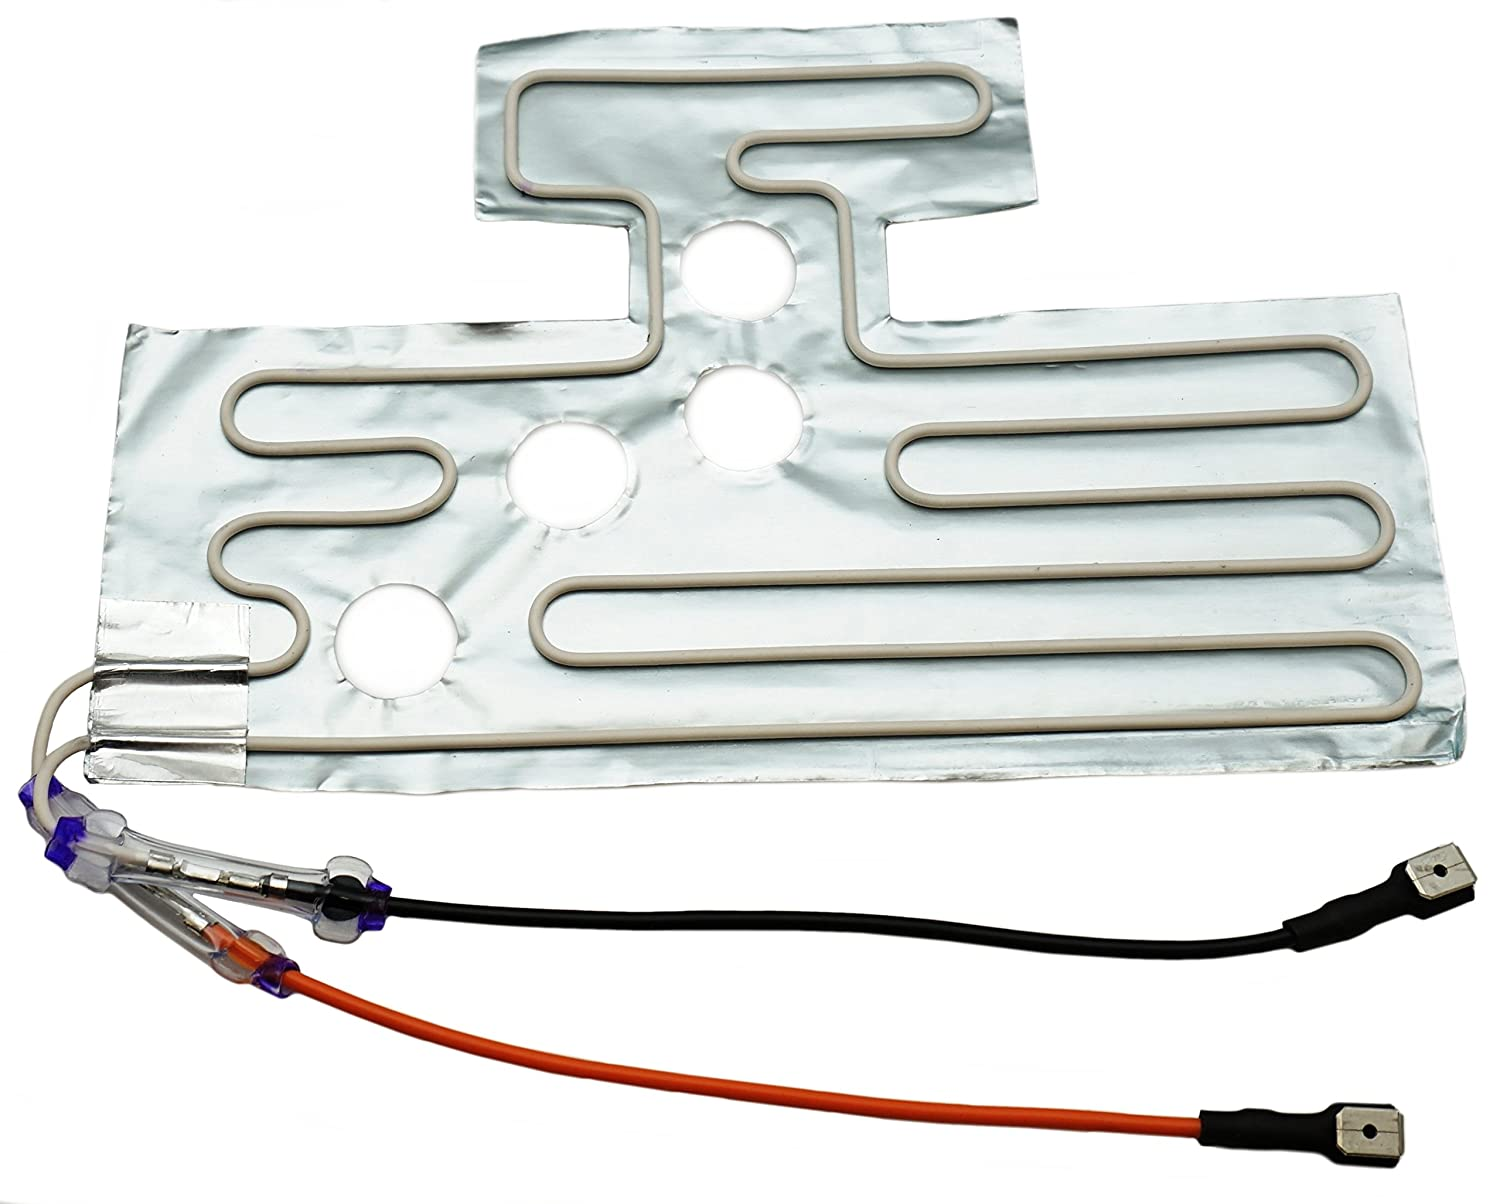 Seneca River Trading Garage Refrigerator Heater Kit for Frigidaire, AP3722172, PS900213, 5303918301